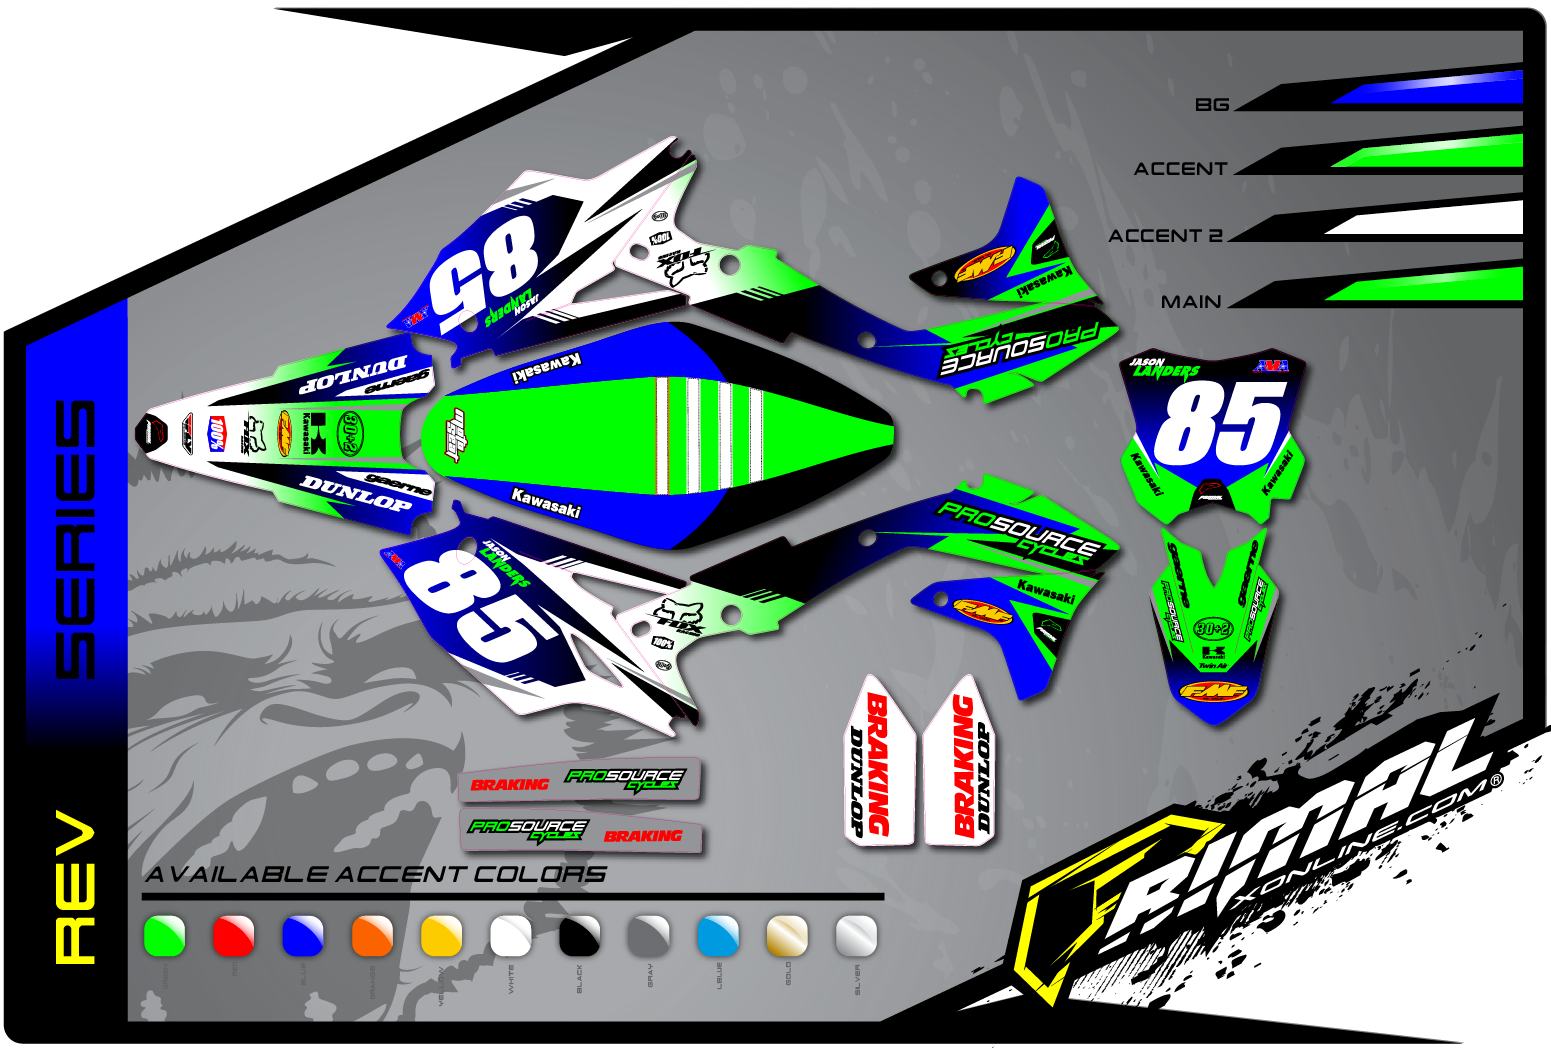 primal-x-motorsports-mx-graphics-motocross-graphics-kxf-450-kxf-250-kx125-kx-250-kx-rev-series